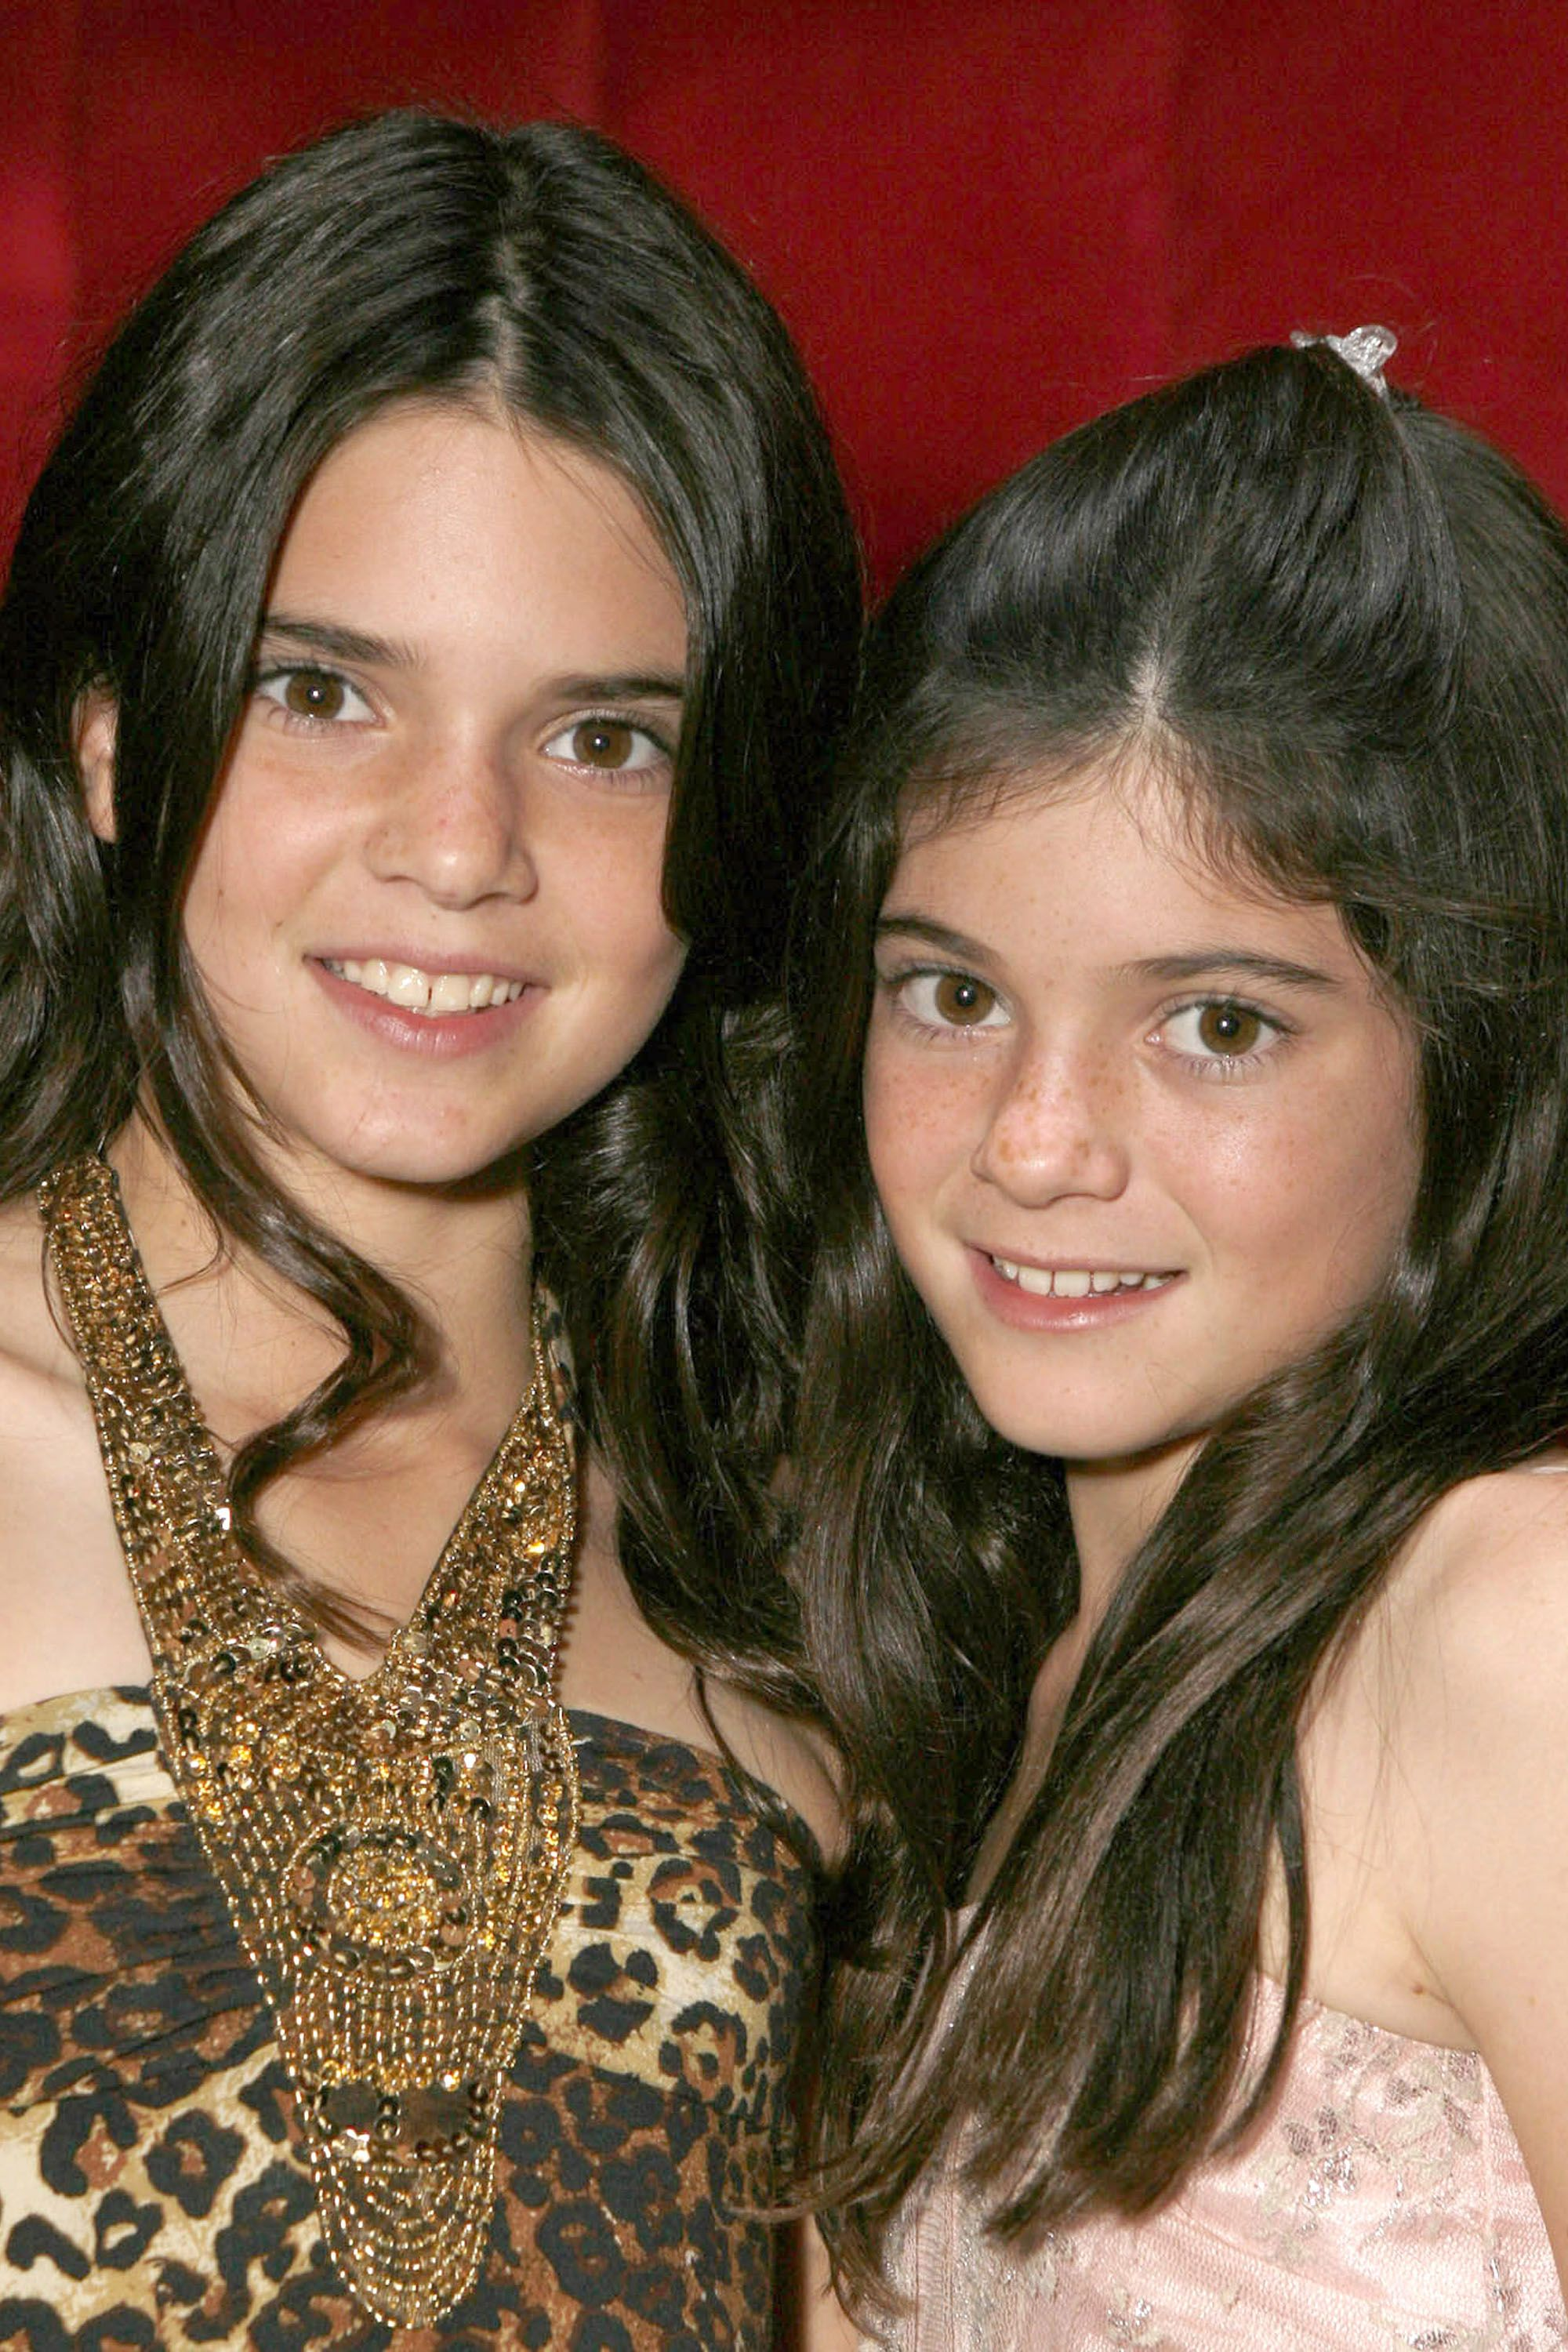 "AGOURA HILLS, CA - OCTOBER 16:  Kendall Jenner and Kylie Jenner pose for a photo at the ""Keeping Up With the Kardashians"" viewing party at Chapter 8 Restaurant on October 16, 2007 in Agoura Hills, California.  (Photo by Jeff Vespa/WireImage)  *** Local Caption ***"